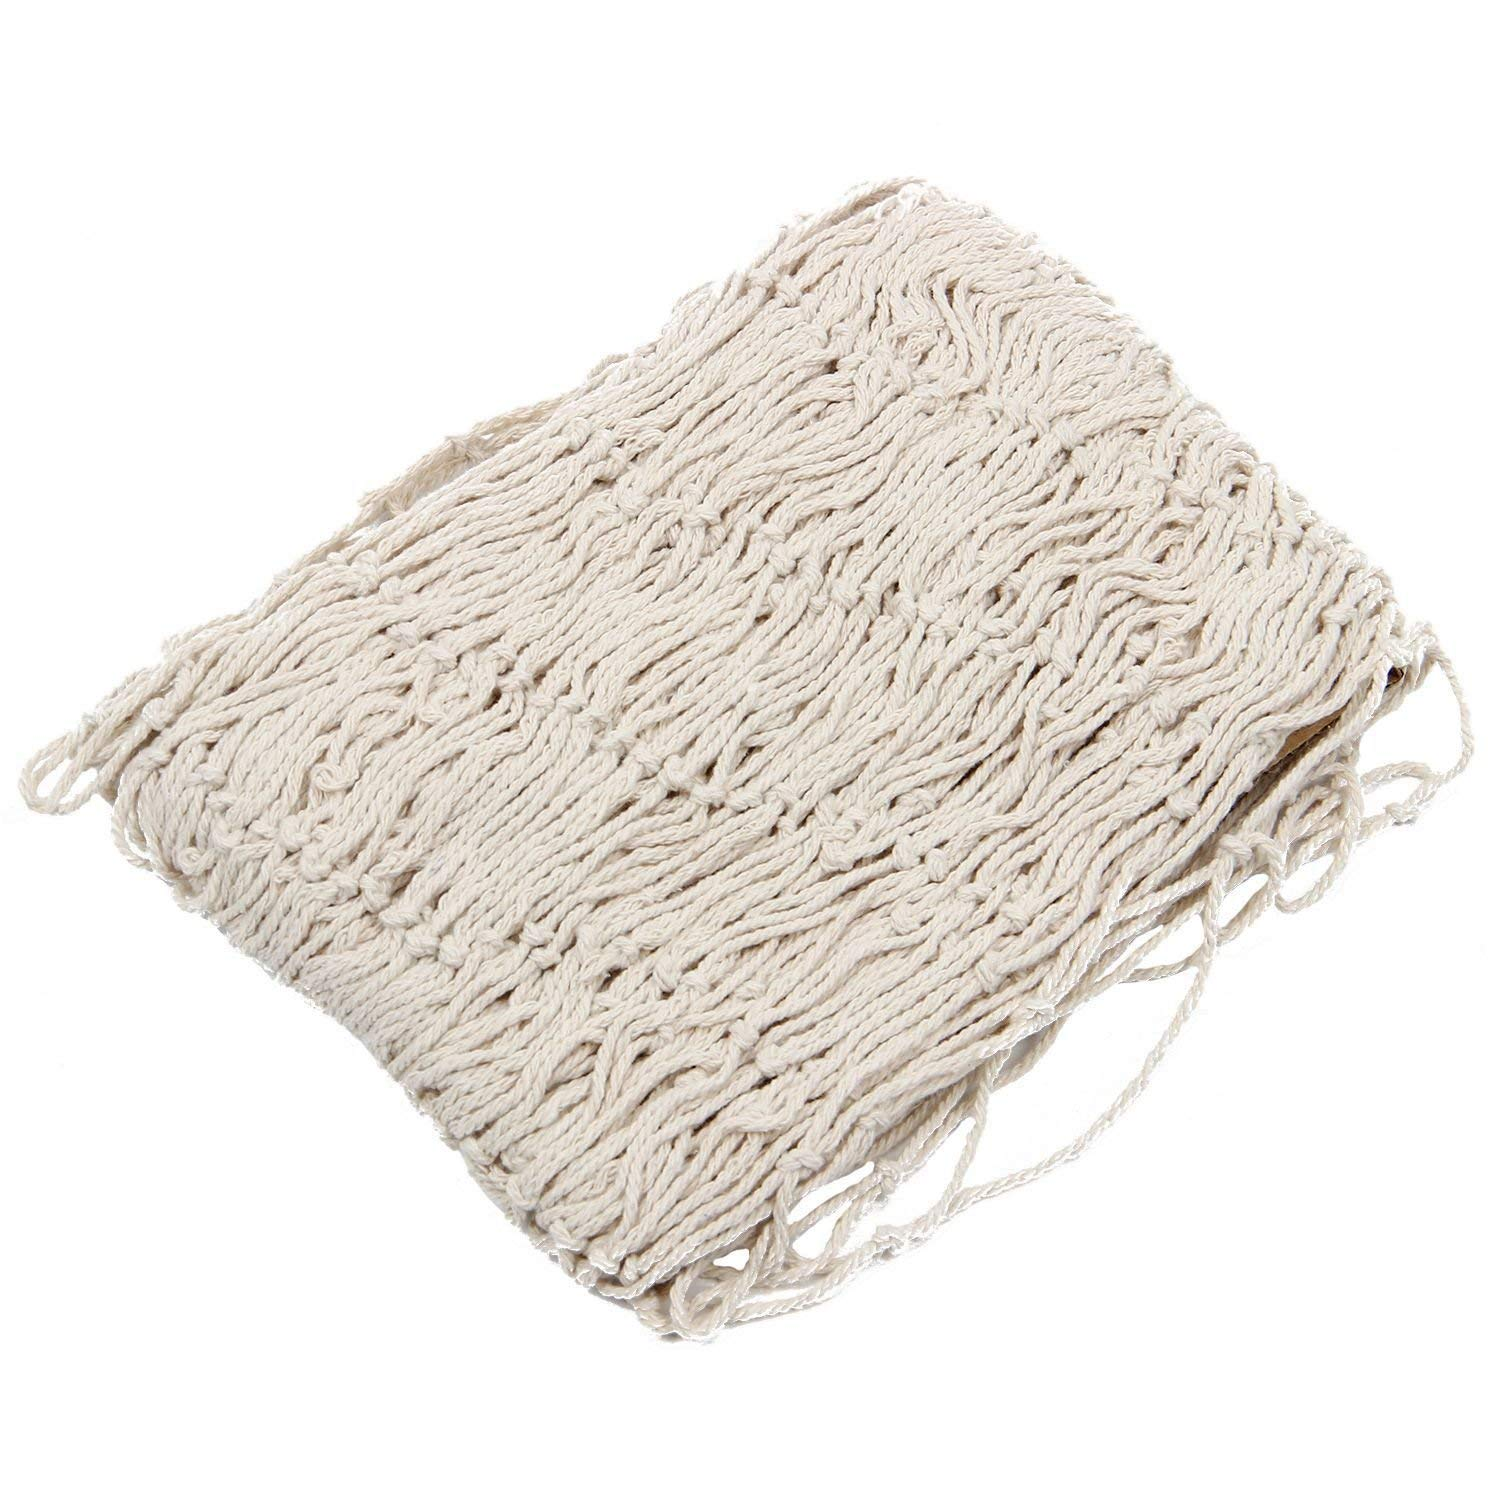 ITTA 1.5 x 2 m Decorative Fishing Net Nautical Sea Ocean Fish Net for Home Party Wedding Photography Props Decoration Wall Decor Beige